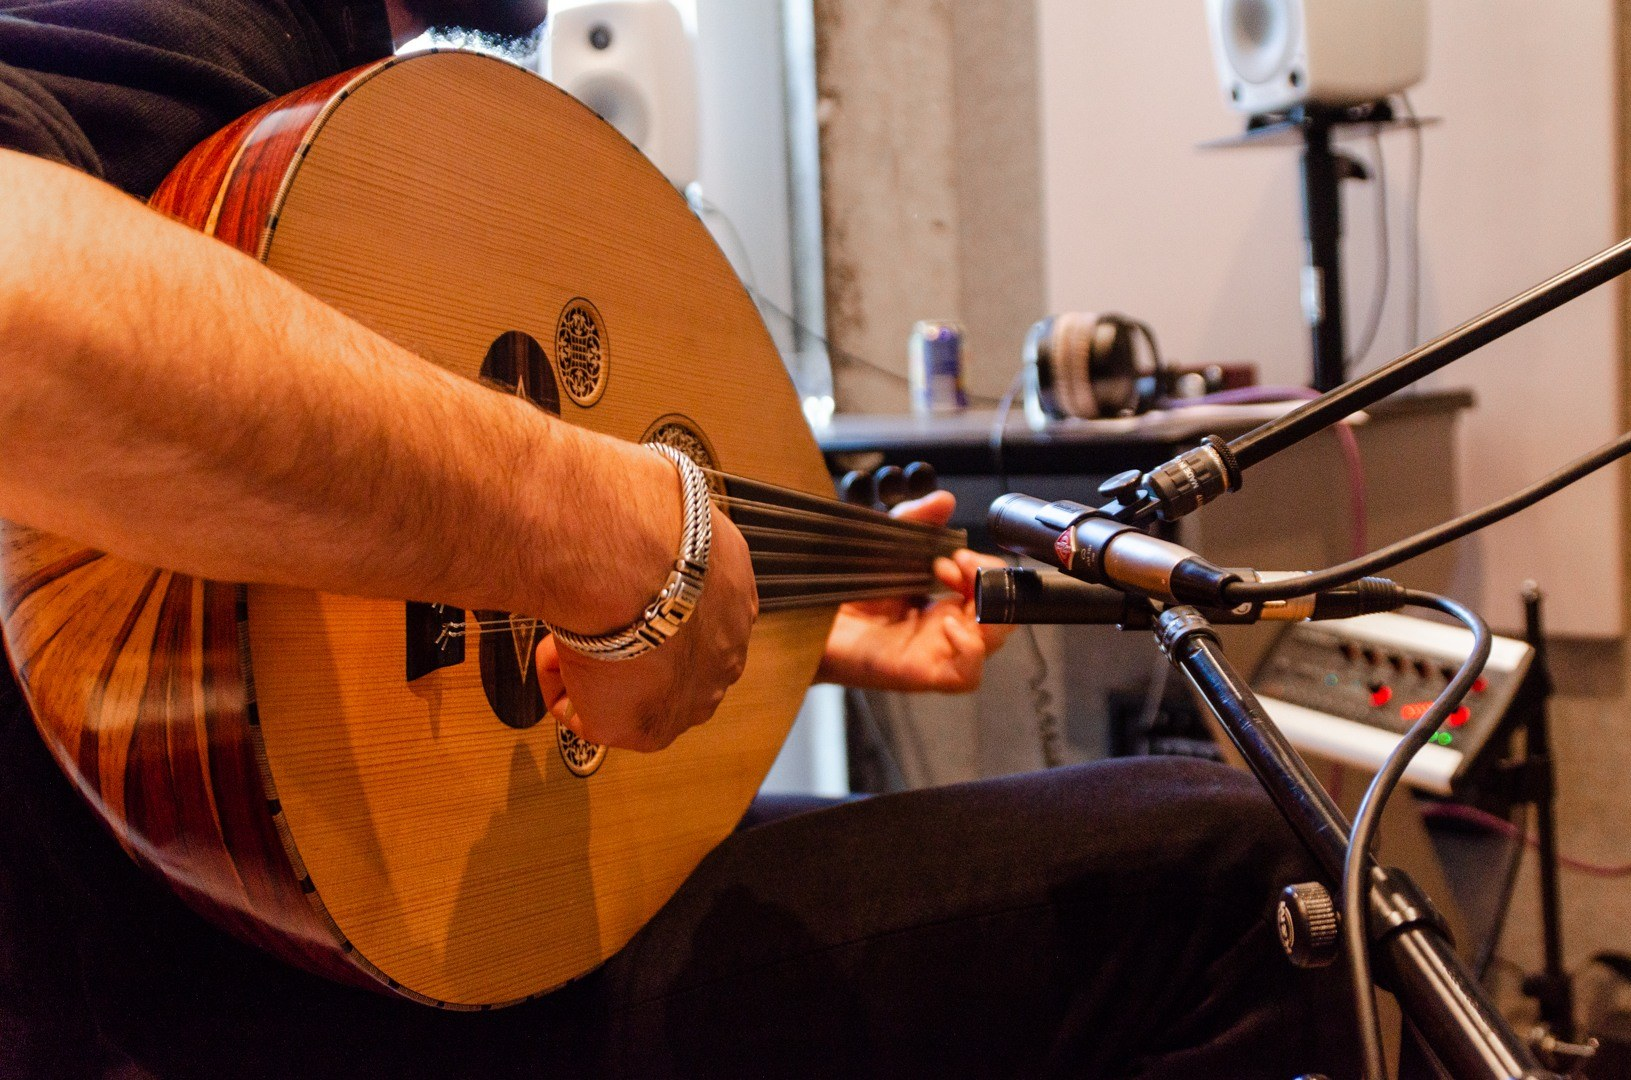 Instruments for Change: Changing the World Through Music